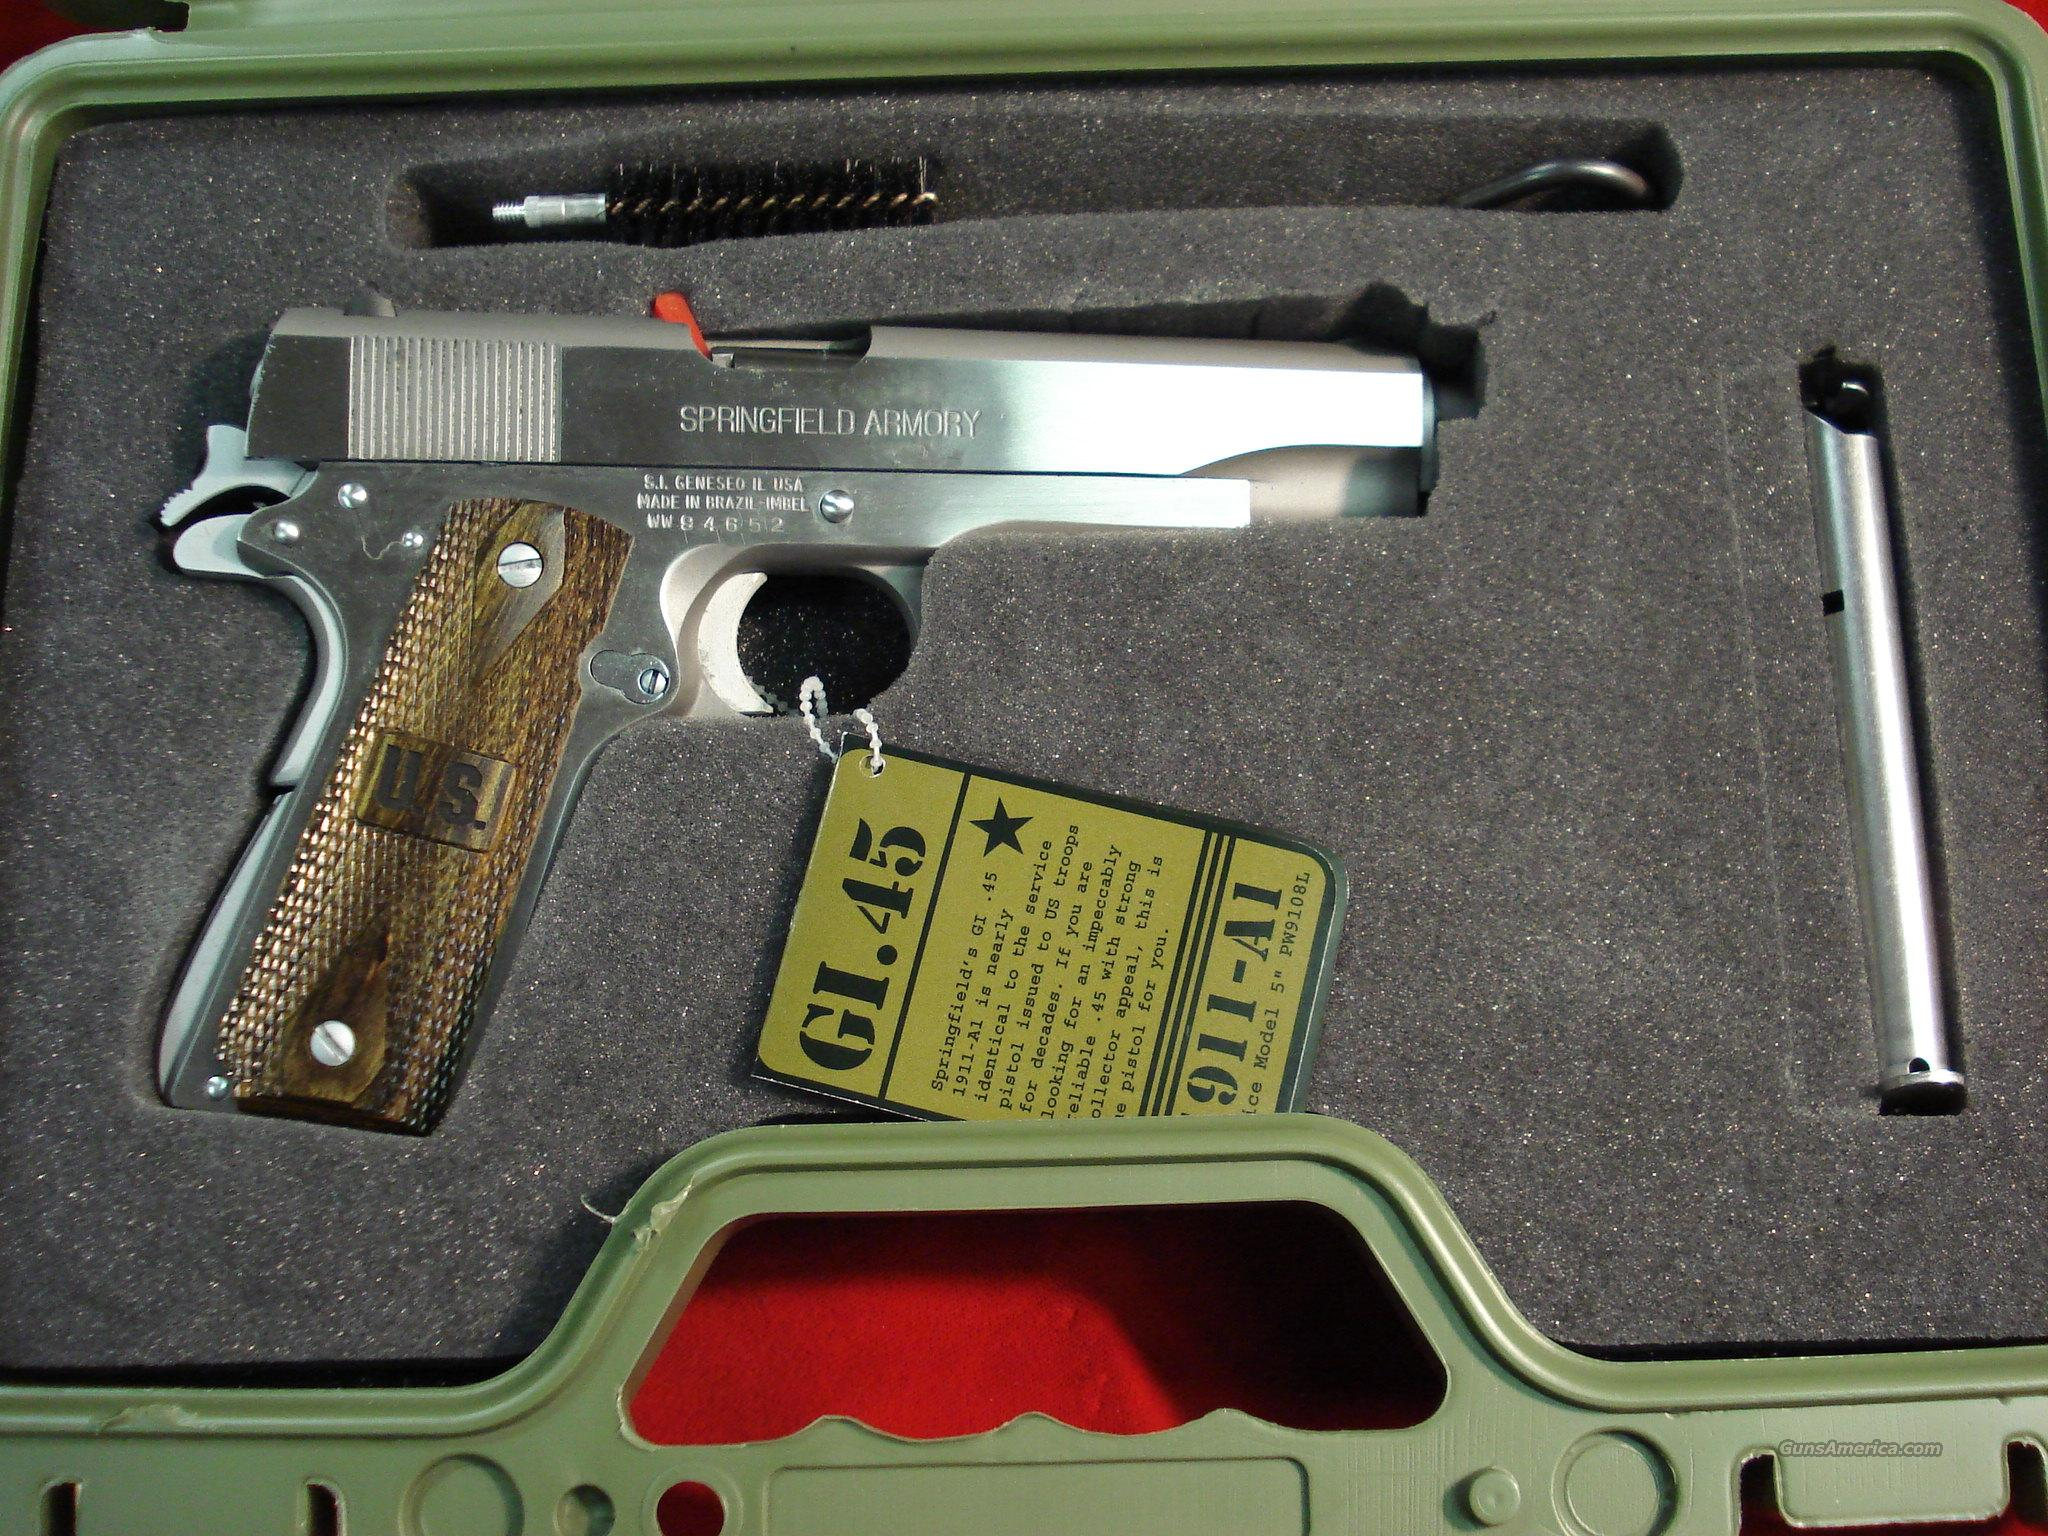 SPRINGFIELD ARMORY GI STAINLESS (PW9151LP) NEW  Guns > Pistols > Springfield Armory Pistols > 1911 Type